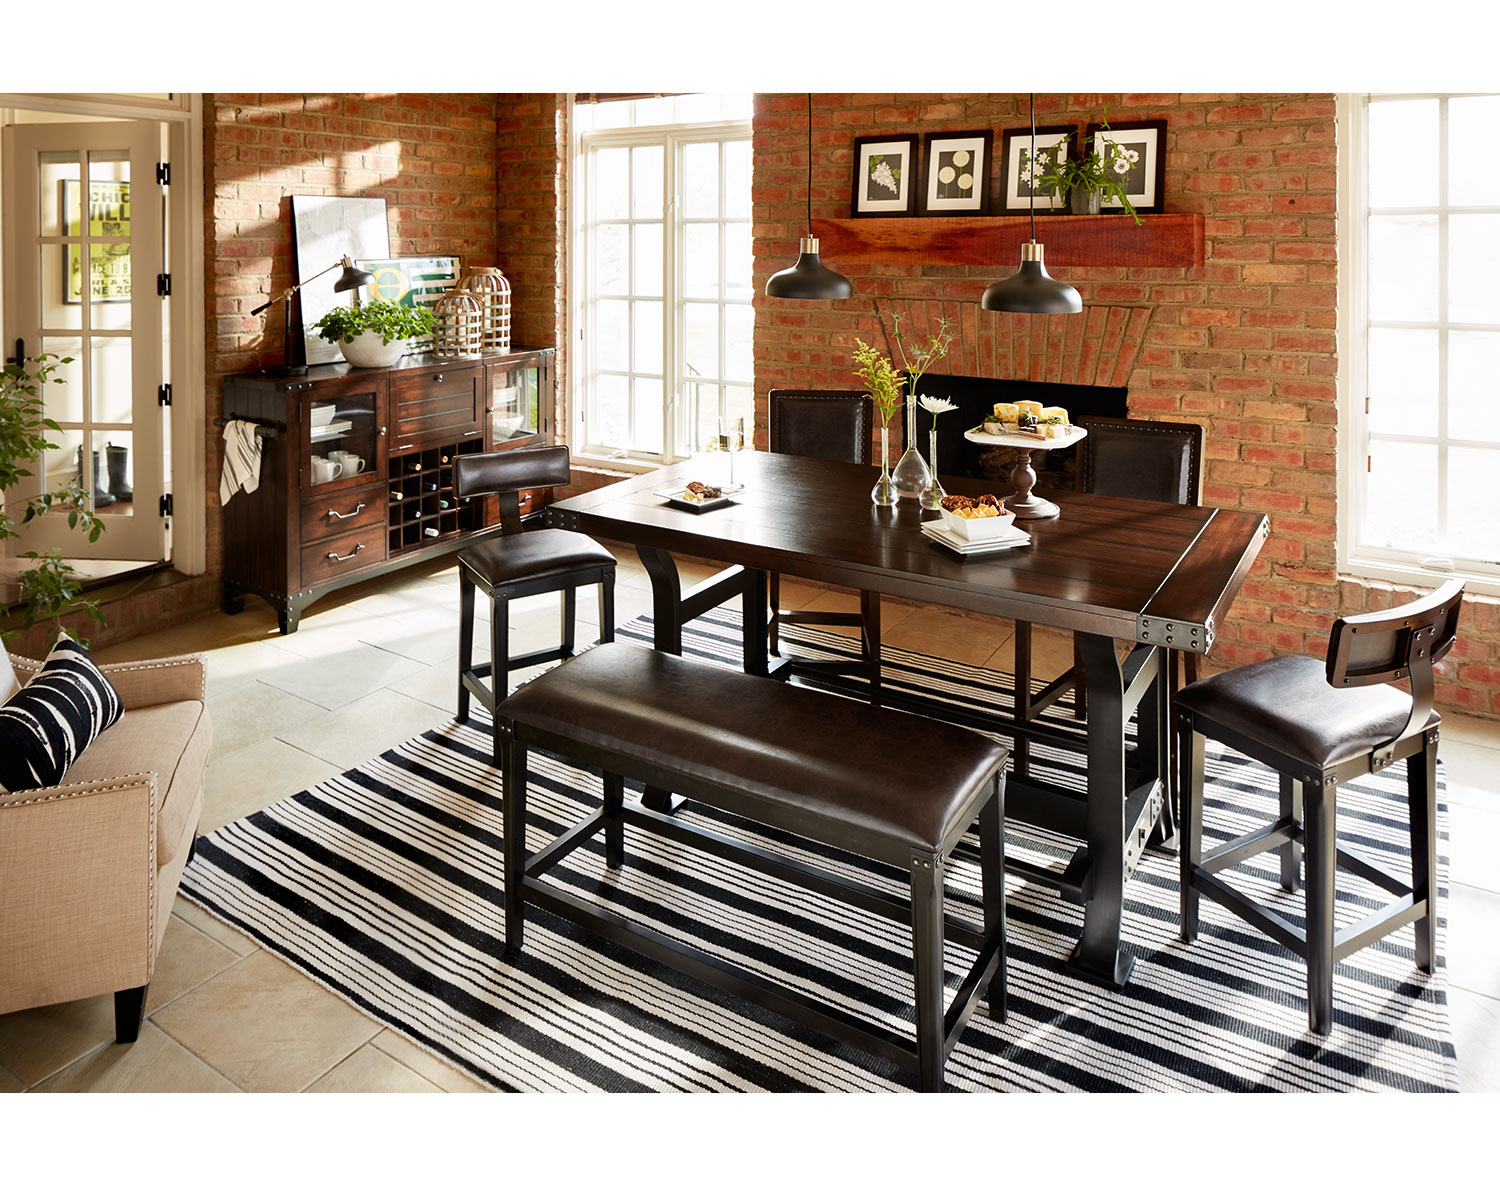 The Newcastle Dining Collection